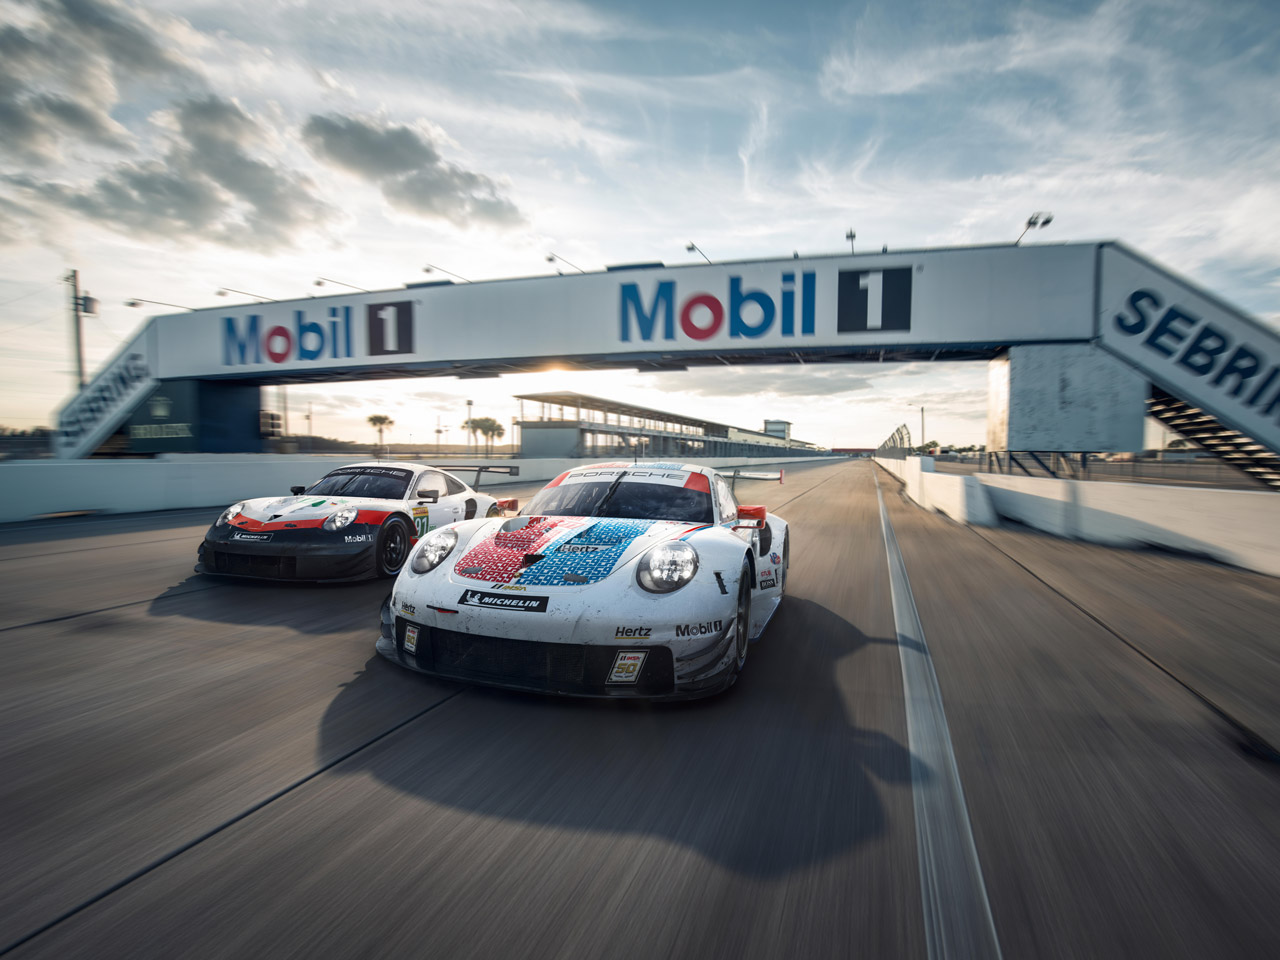 Porsche Sebring Double Header 2019. Doppelte Rennaction in Florida.